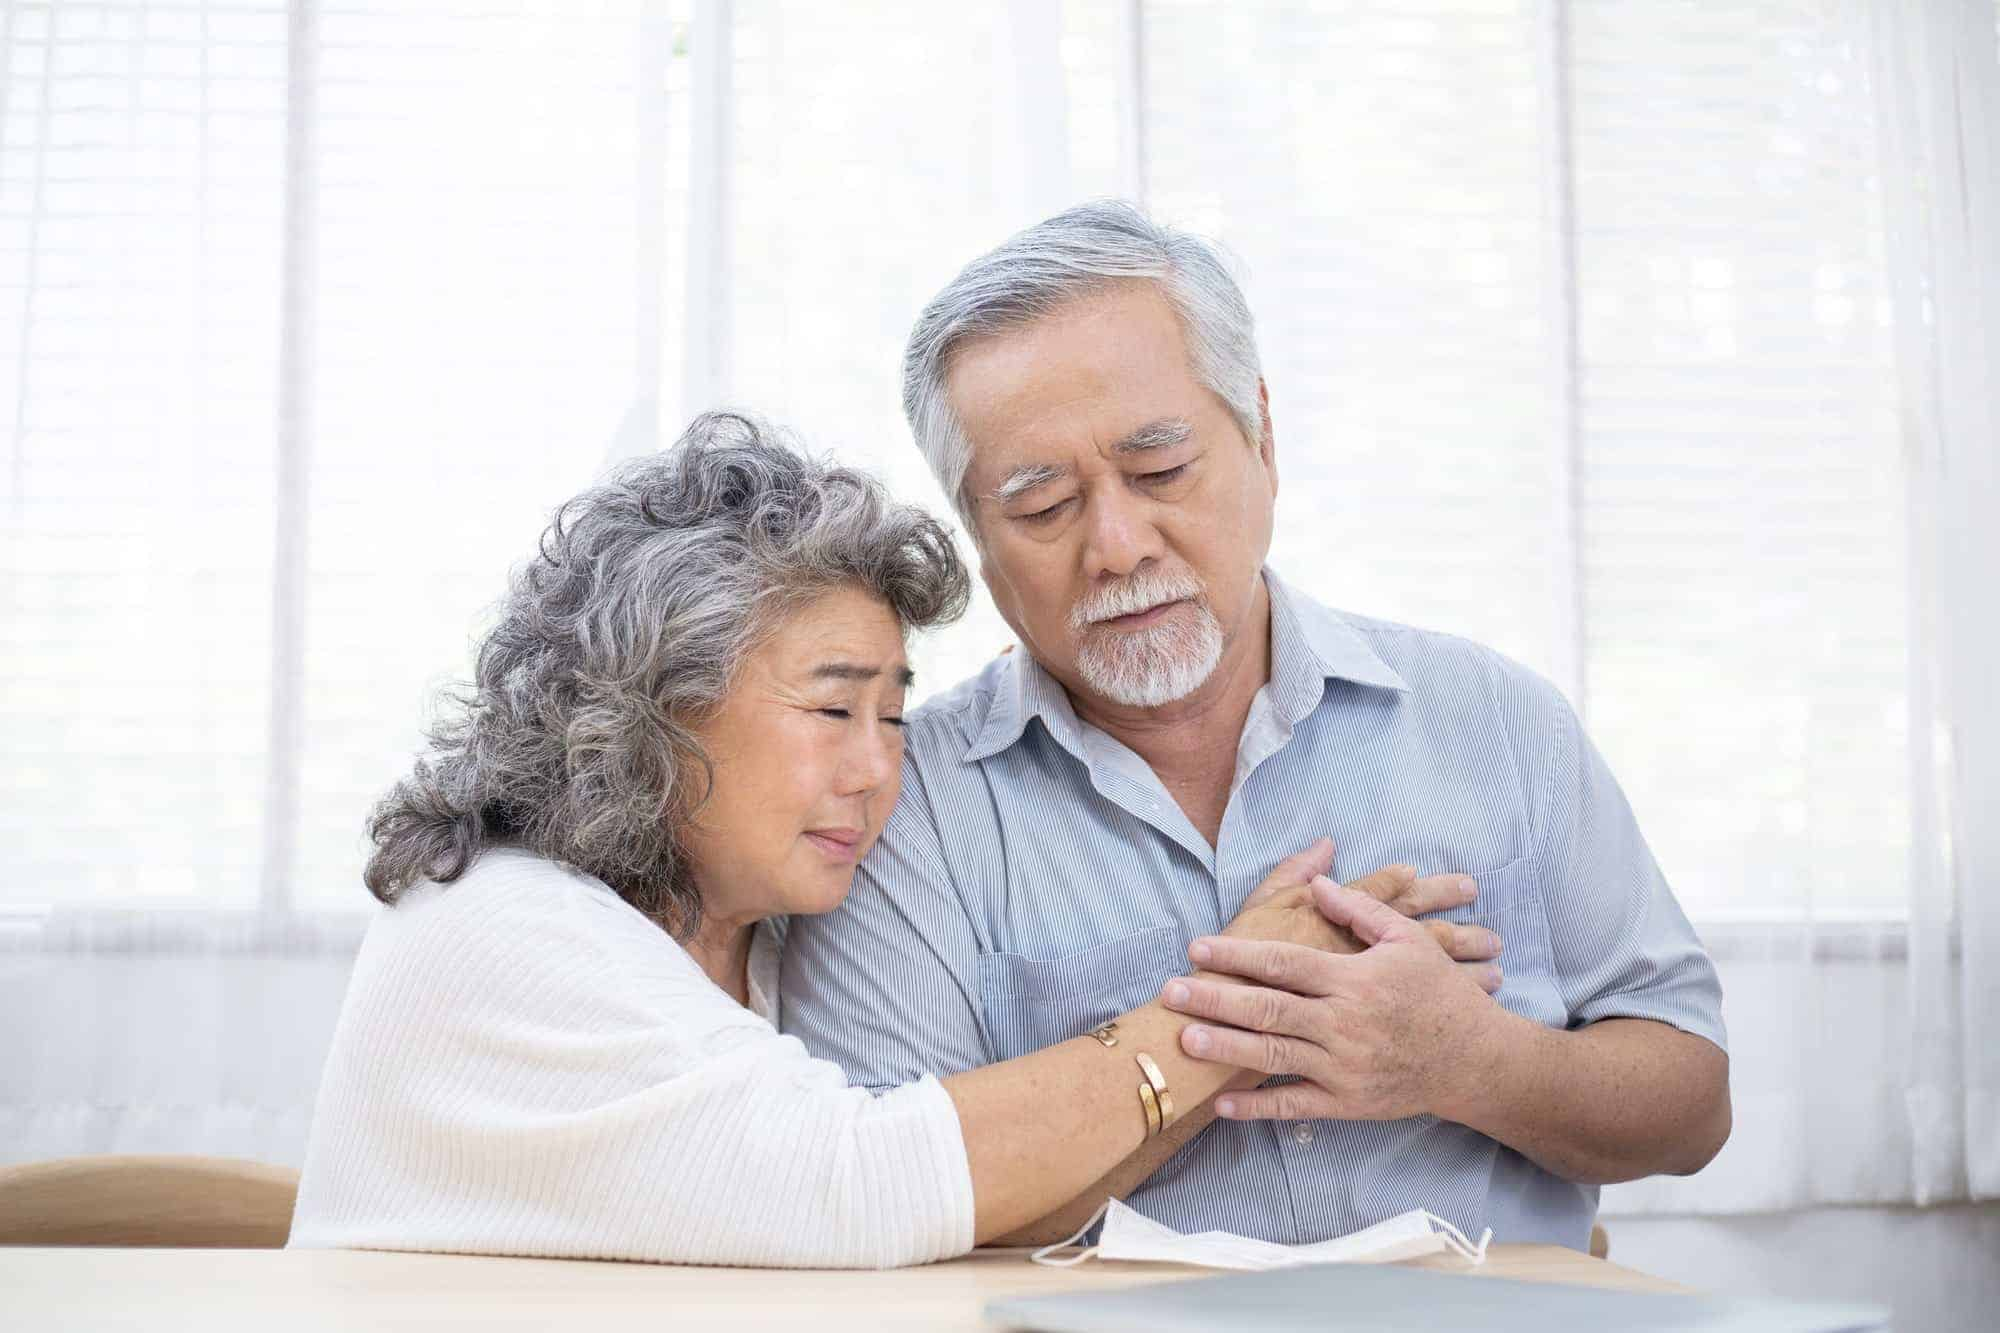 Asian wife embrace senior husband after receive diagnosis of sickness